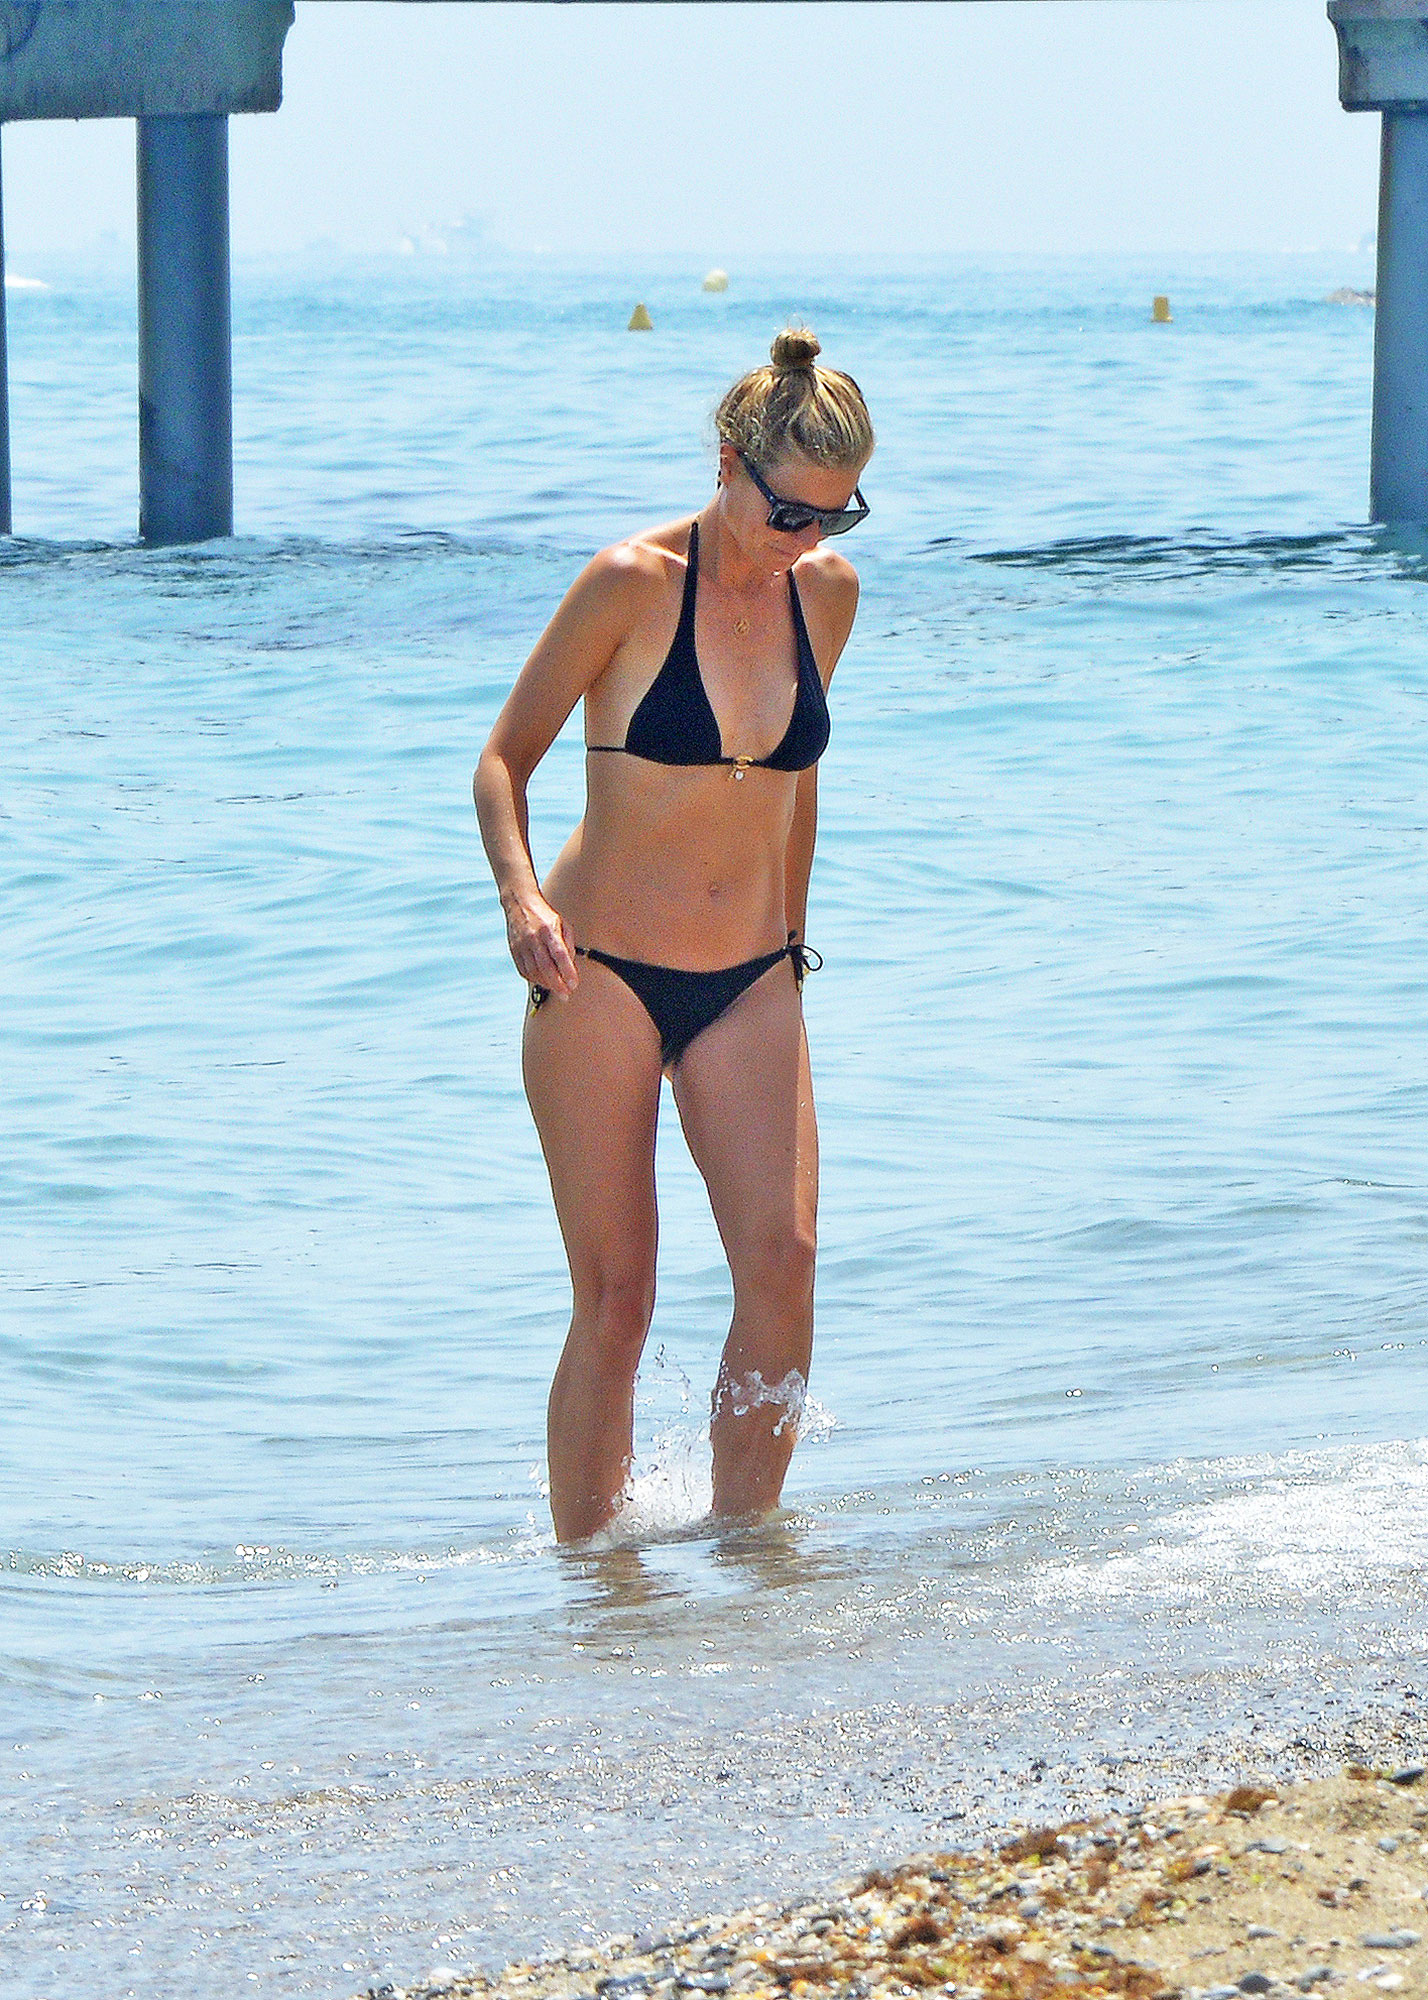 SwimsuitsPhotos 40 Hottest Fitness The Celebs And Over In Tips P8wknO0X